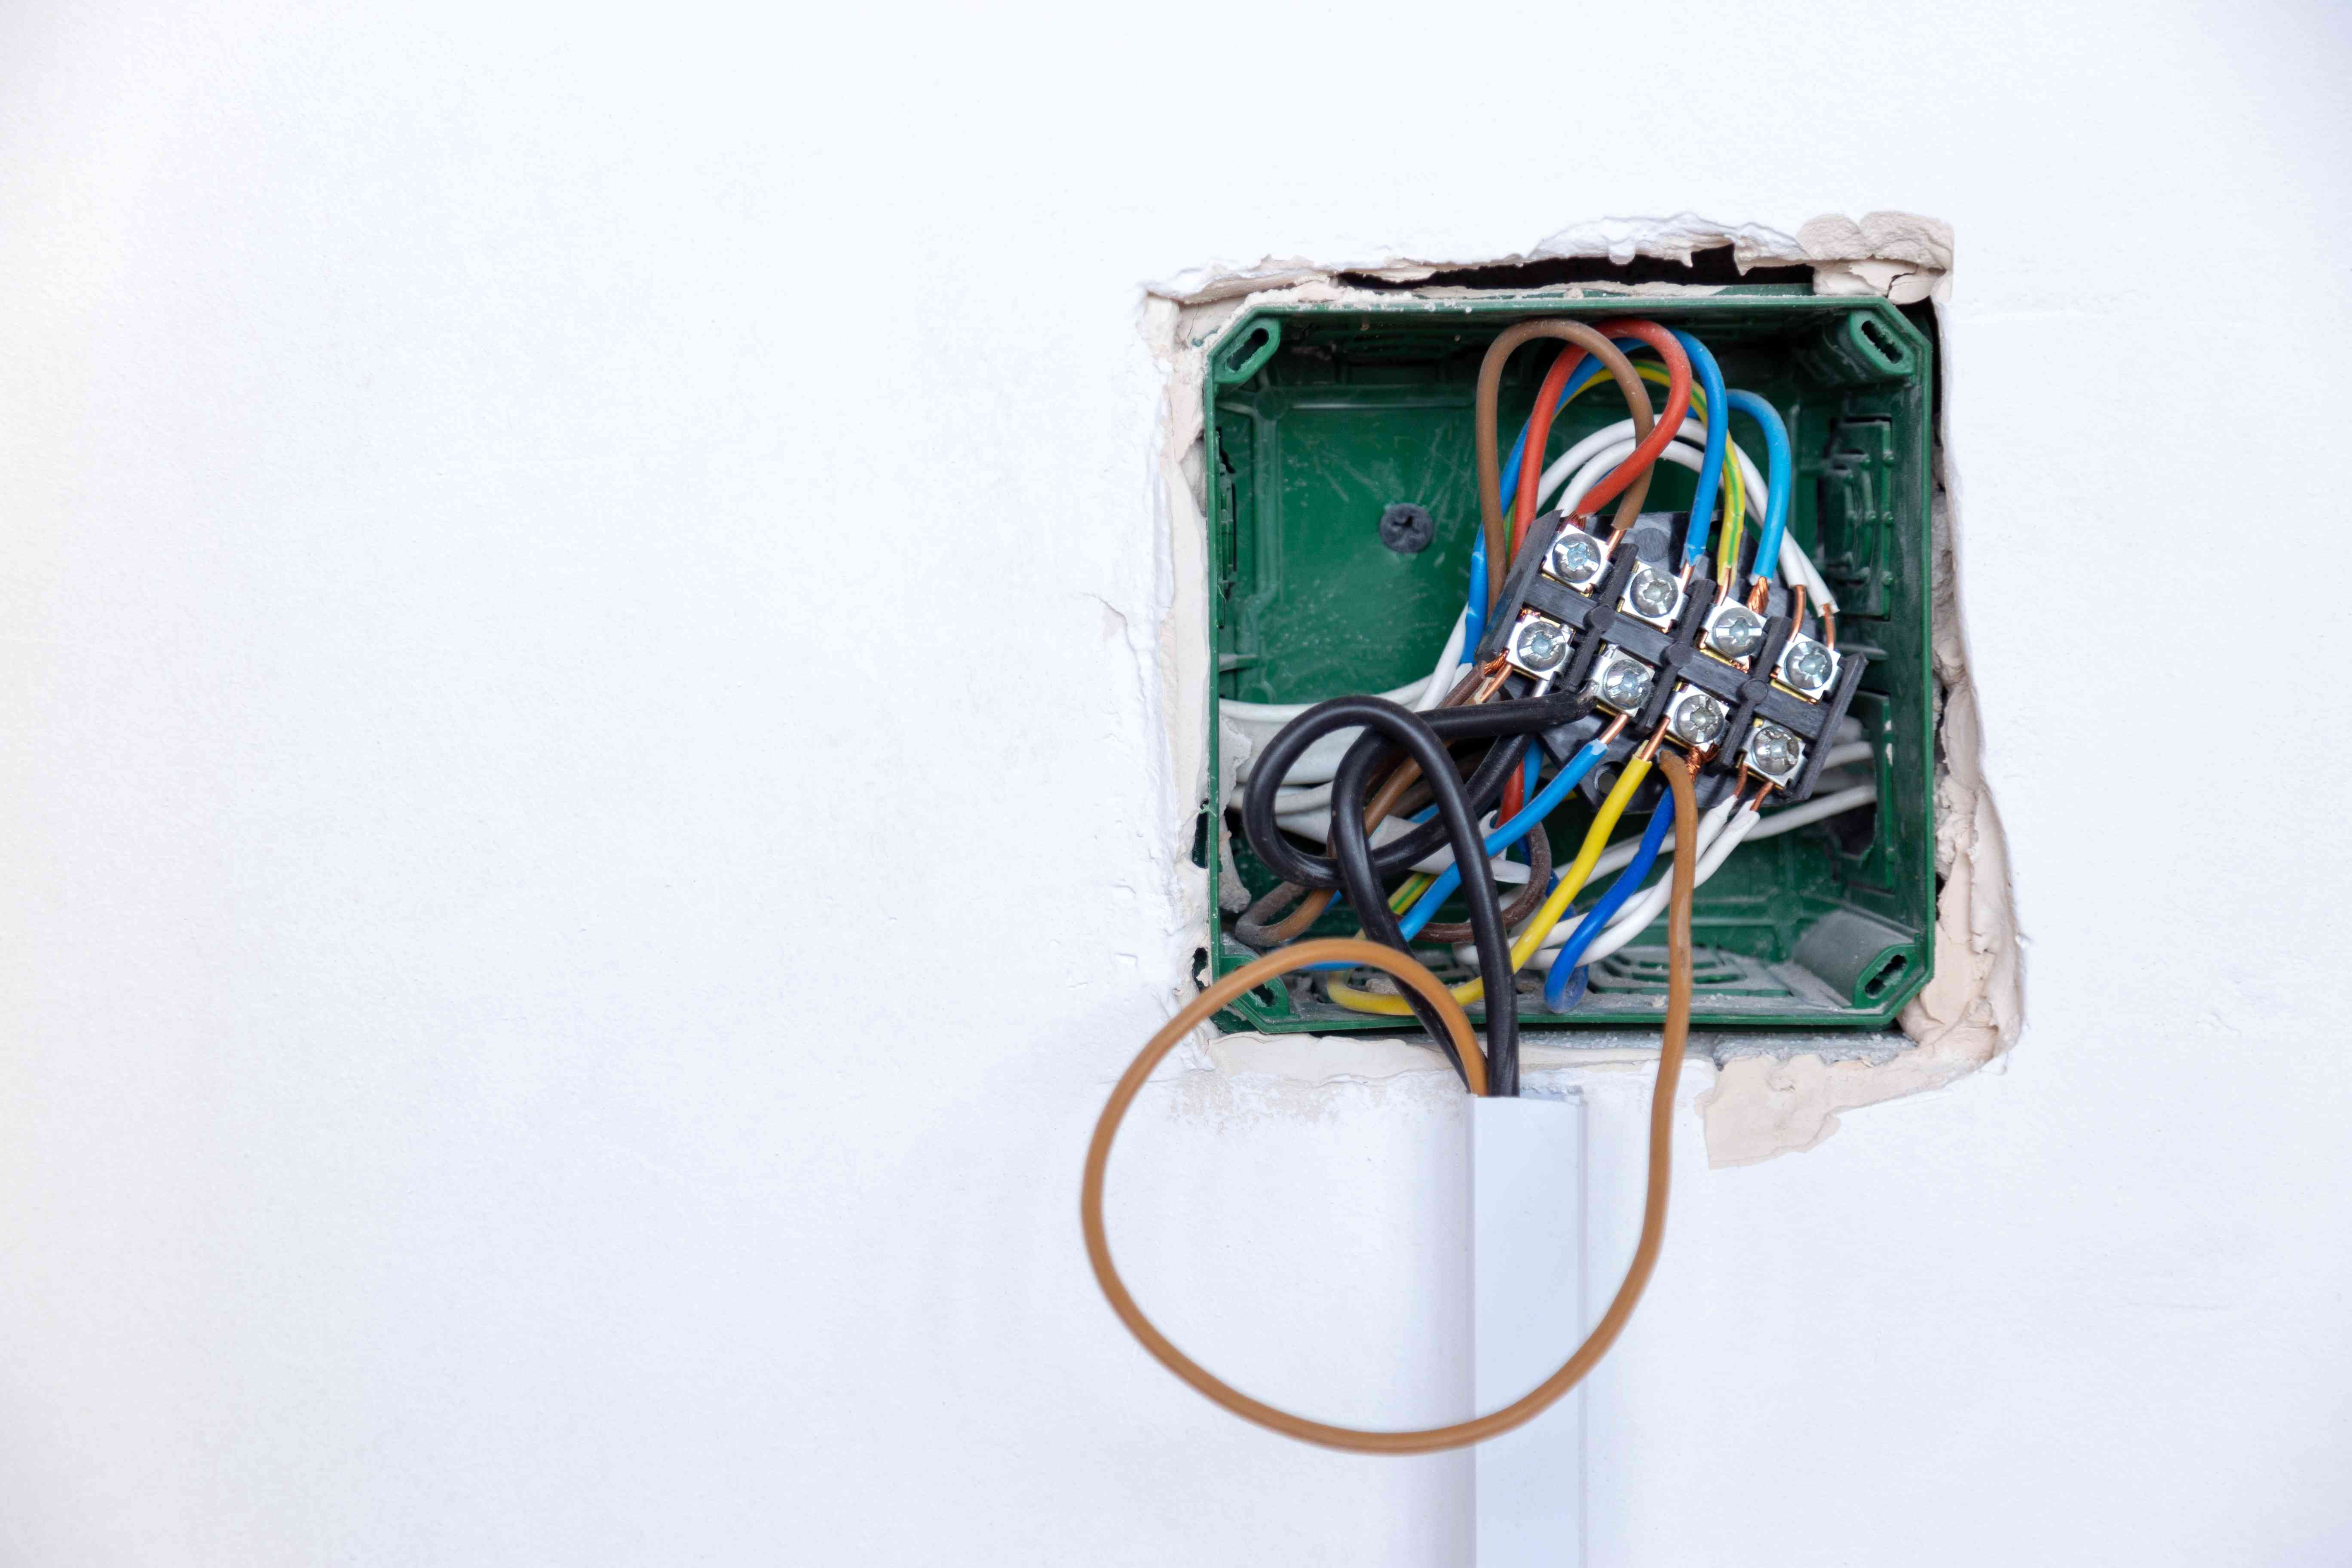 Electrical wiring junction box